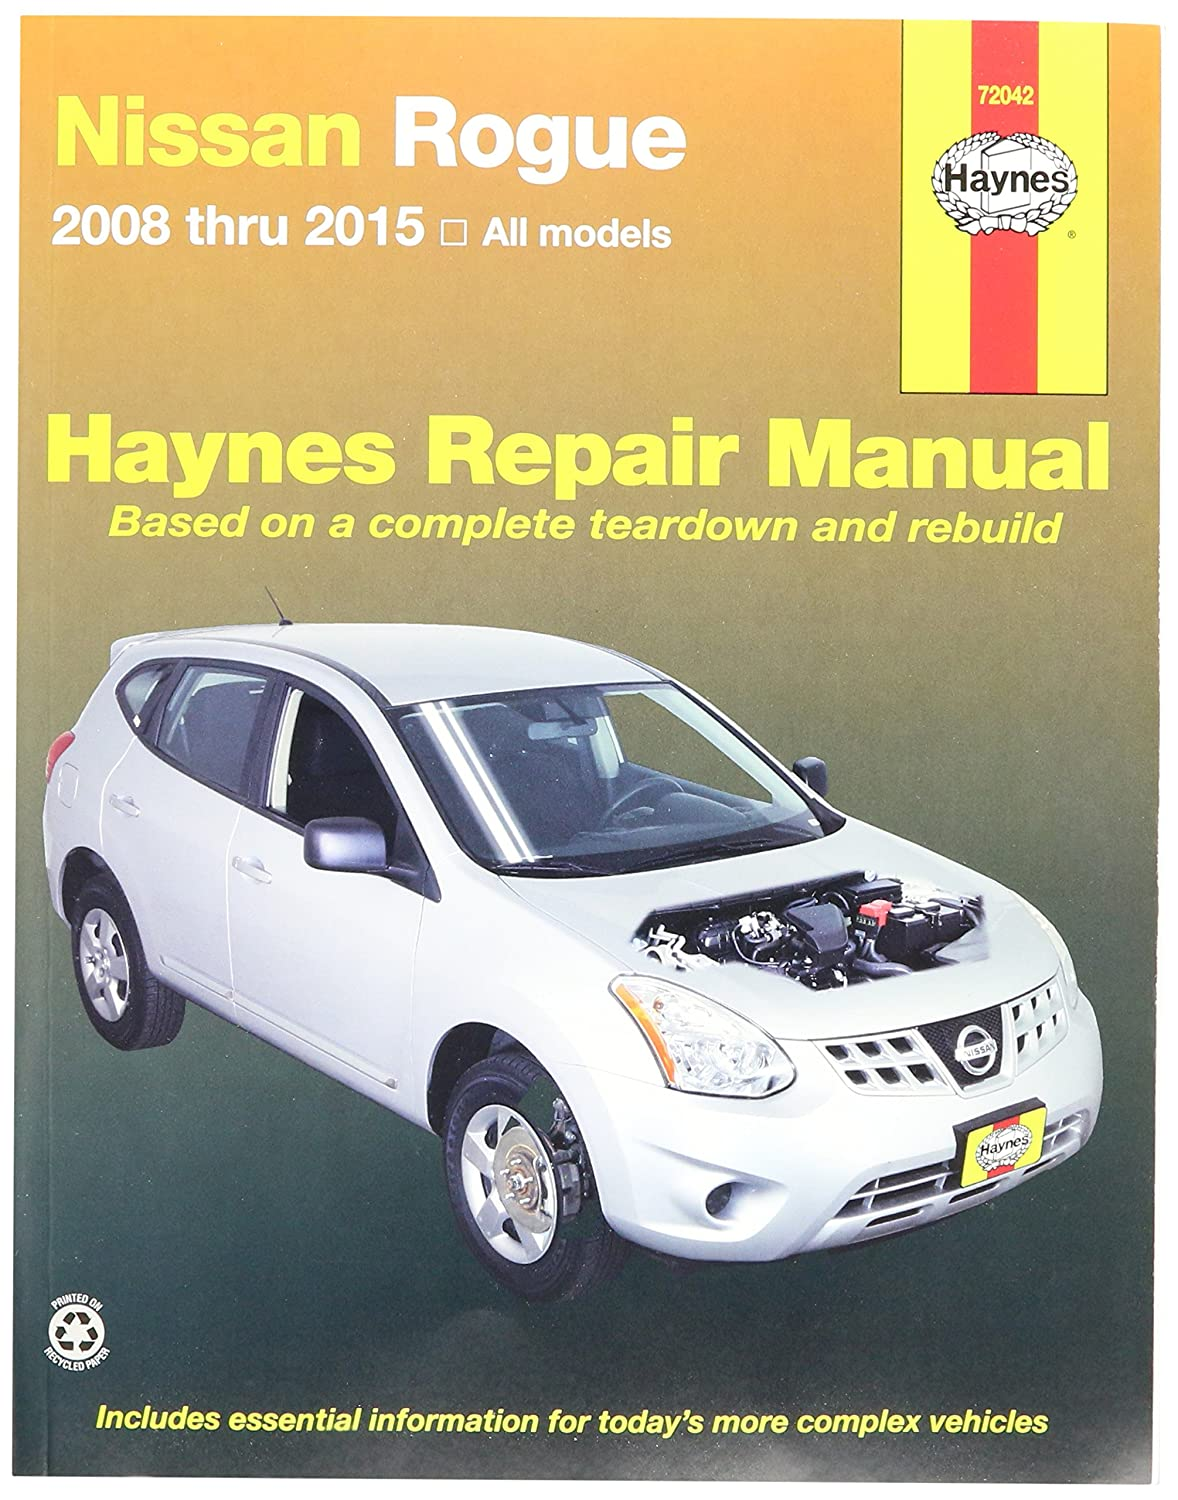 Amazon.com: Haynes Repair Manuals Nissan Rogue, '08-'15 (72042): John  Haynes: Automotive